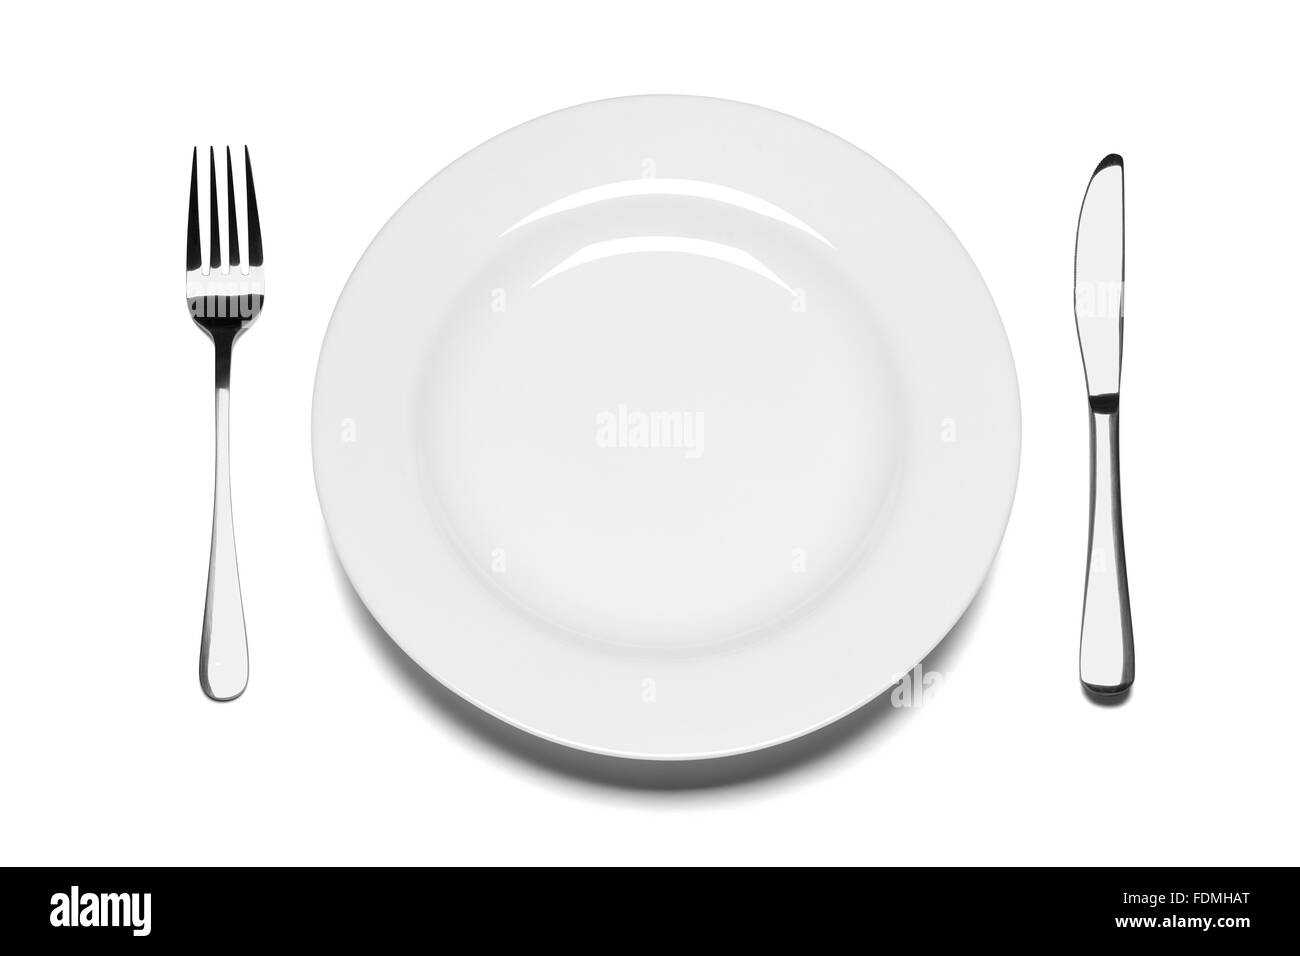 Empty plate with fork and knife isolated on the white background. - Stock Image